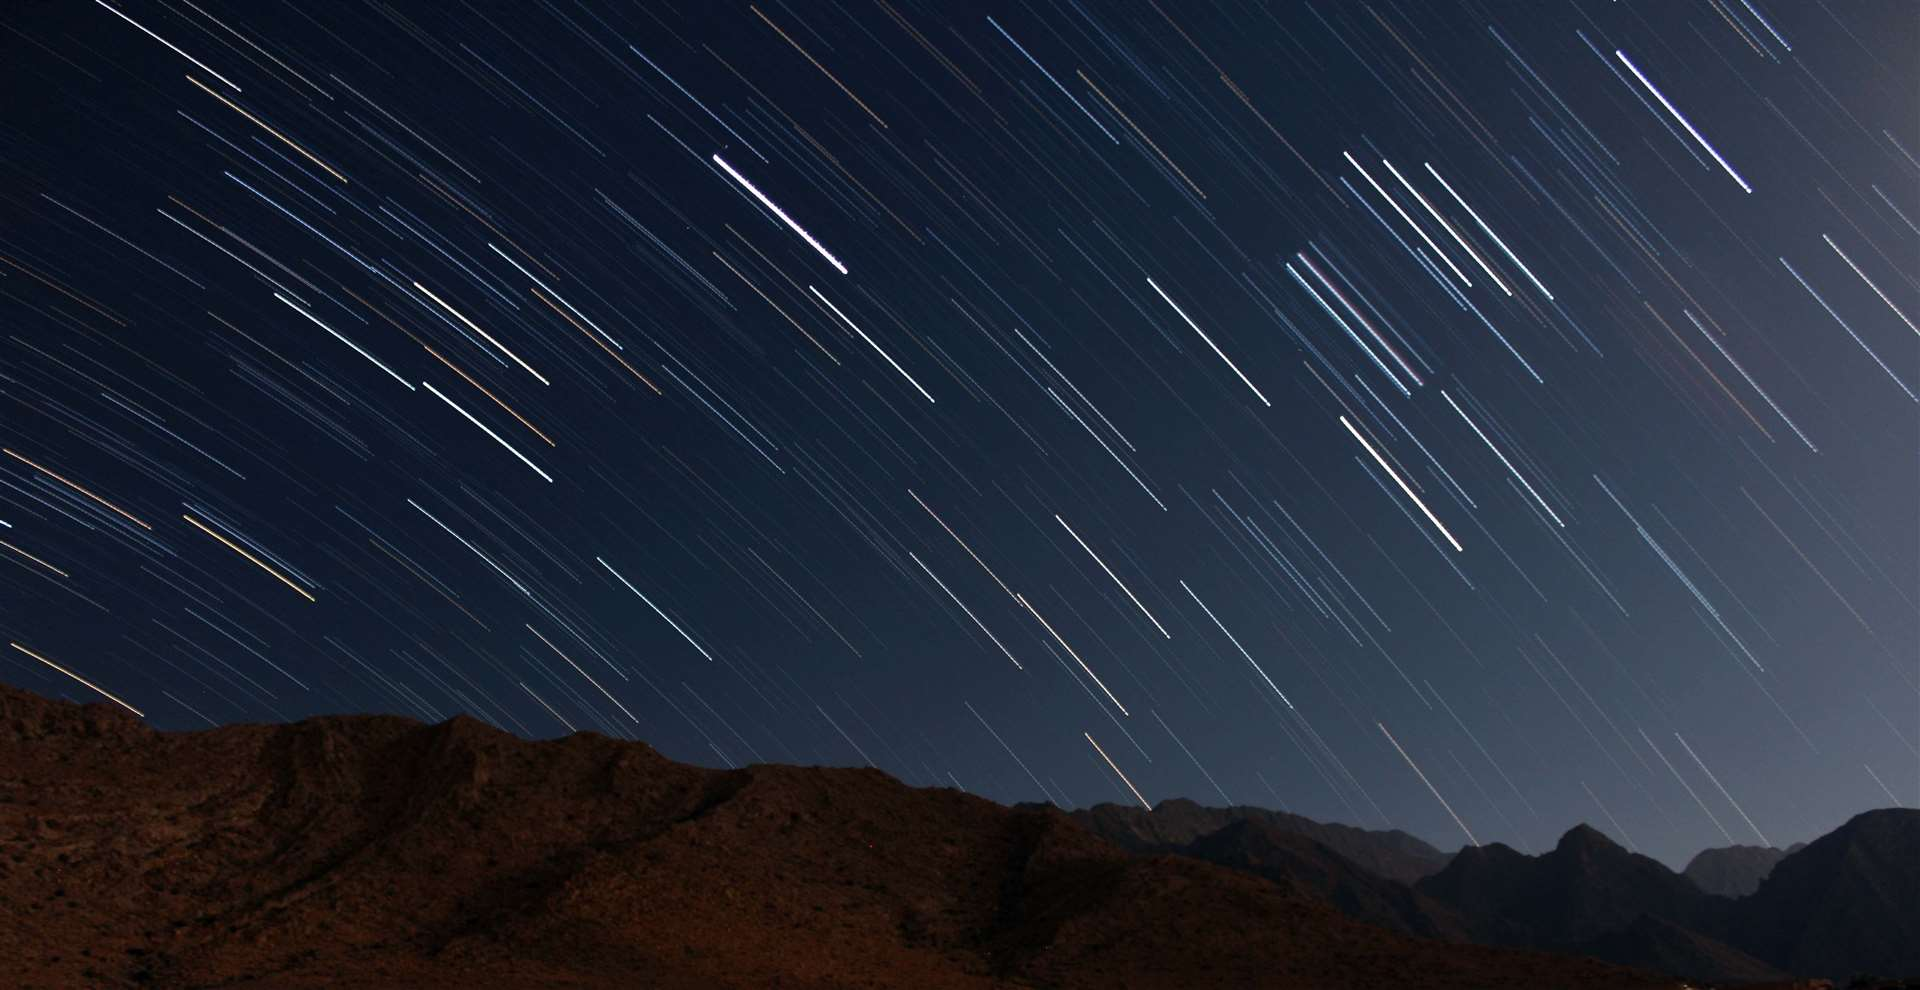 This meteor shower is often dubbed 'the best of the year' because it is so bright and active